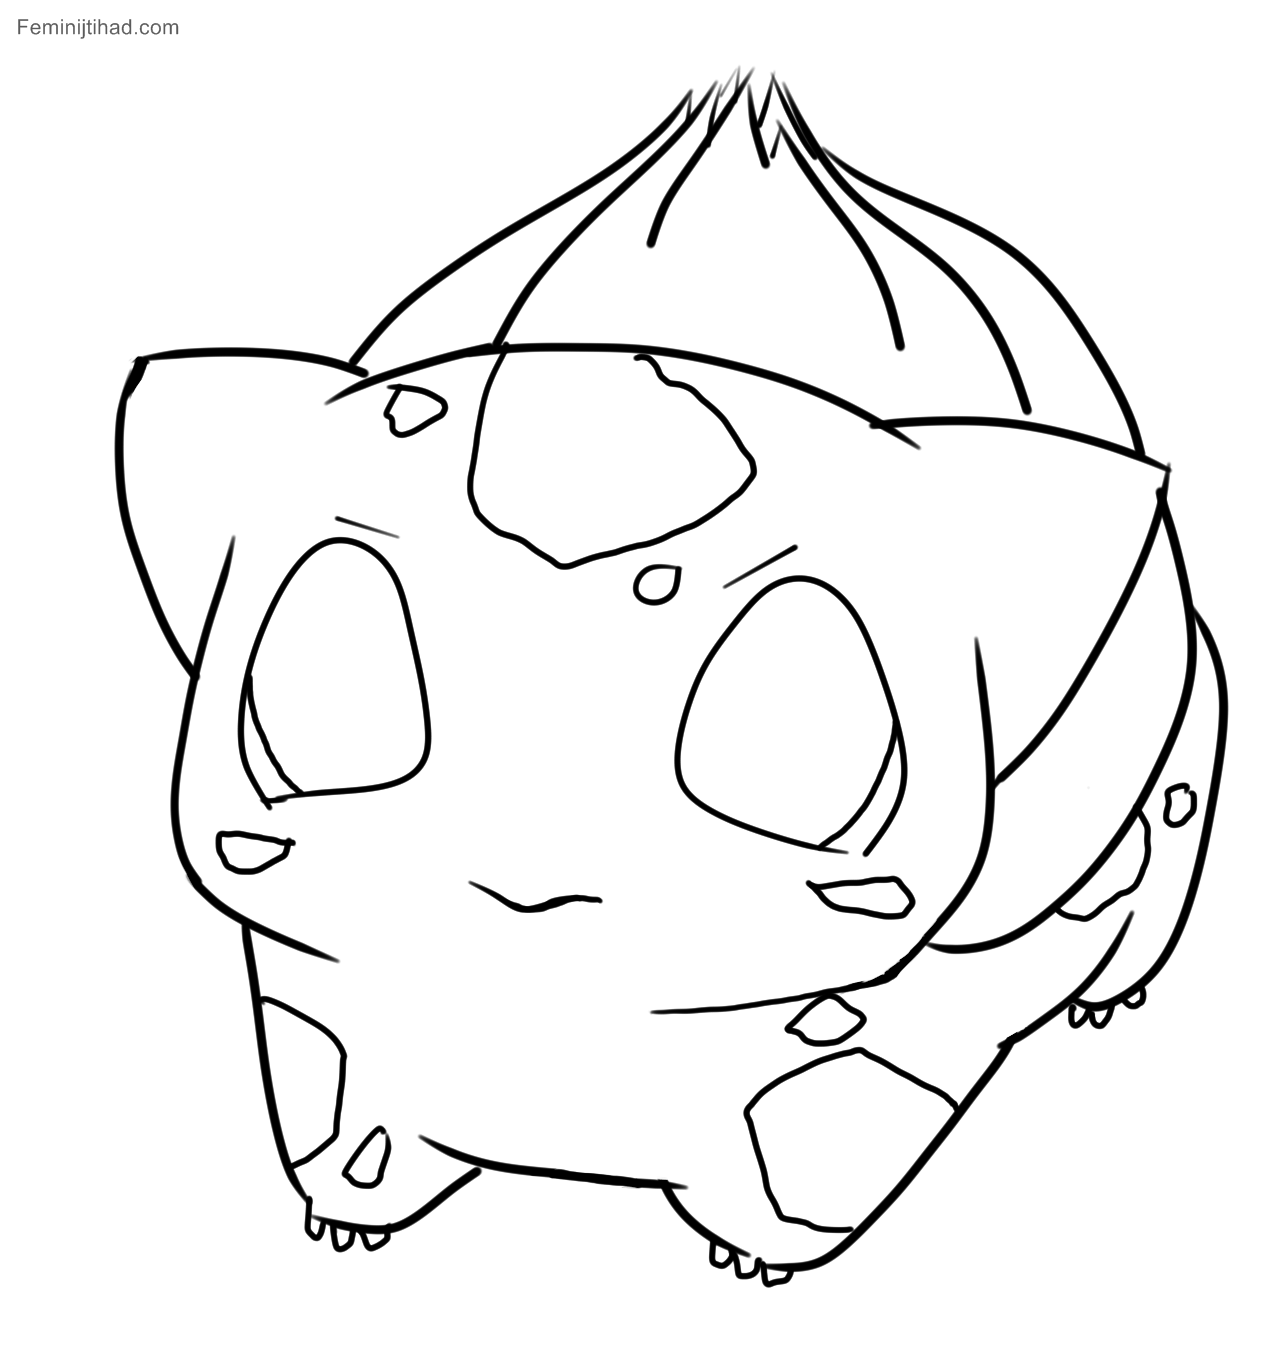 1287x1355 Pokemon Coloring Pages To Print Coloring Pages For Kids